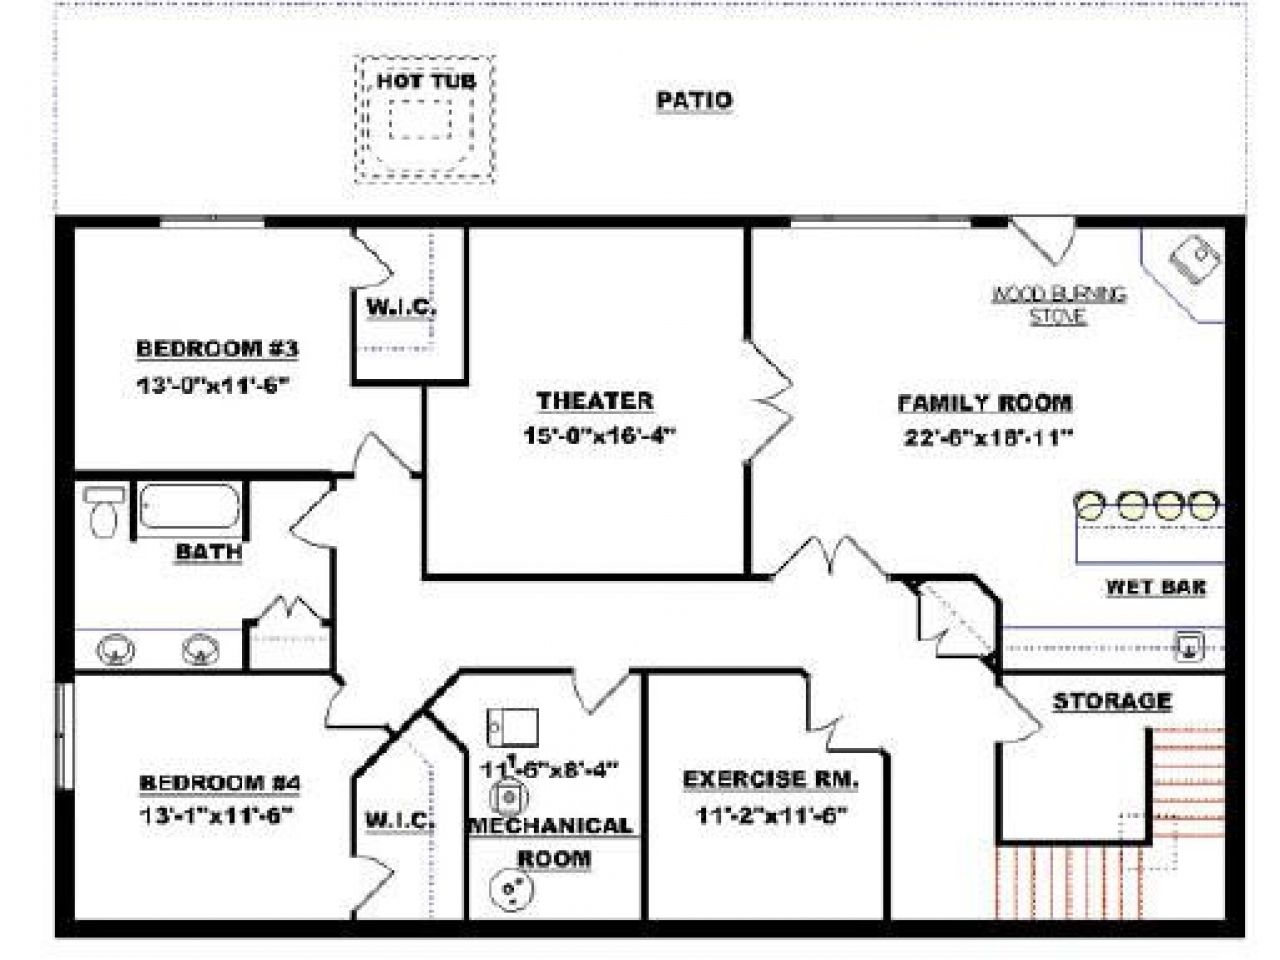 Basement Floor Plans 900 Sq Ft Basement Floor Plans Bungalow